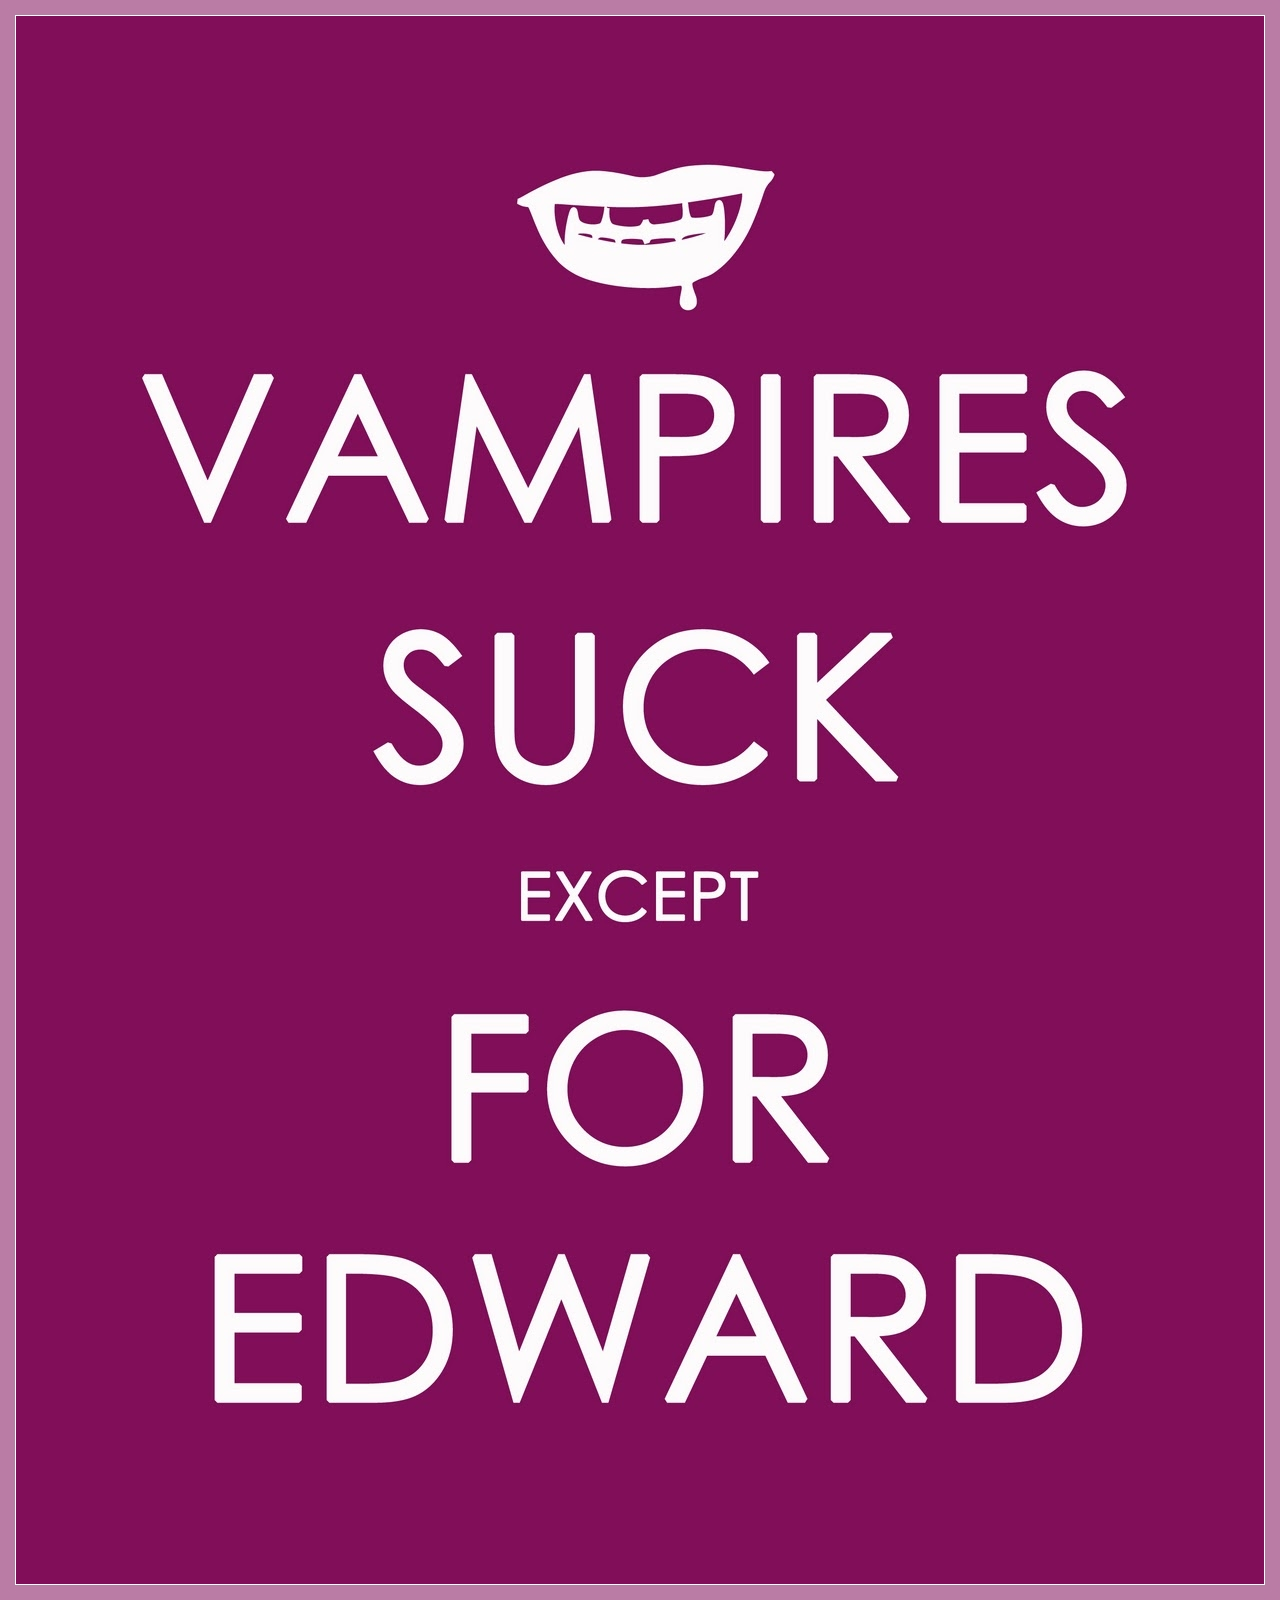 TWILIGHT Vampires Suck EXCEPT FOR EDWARD